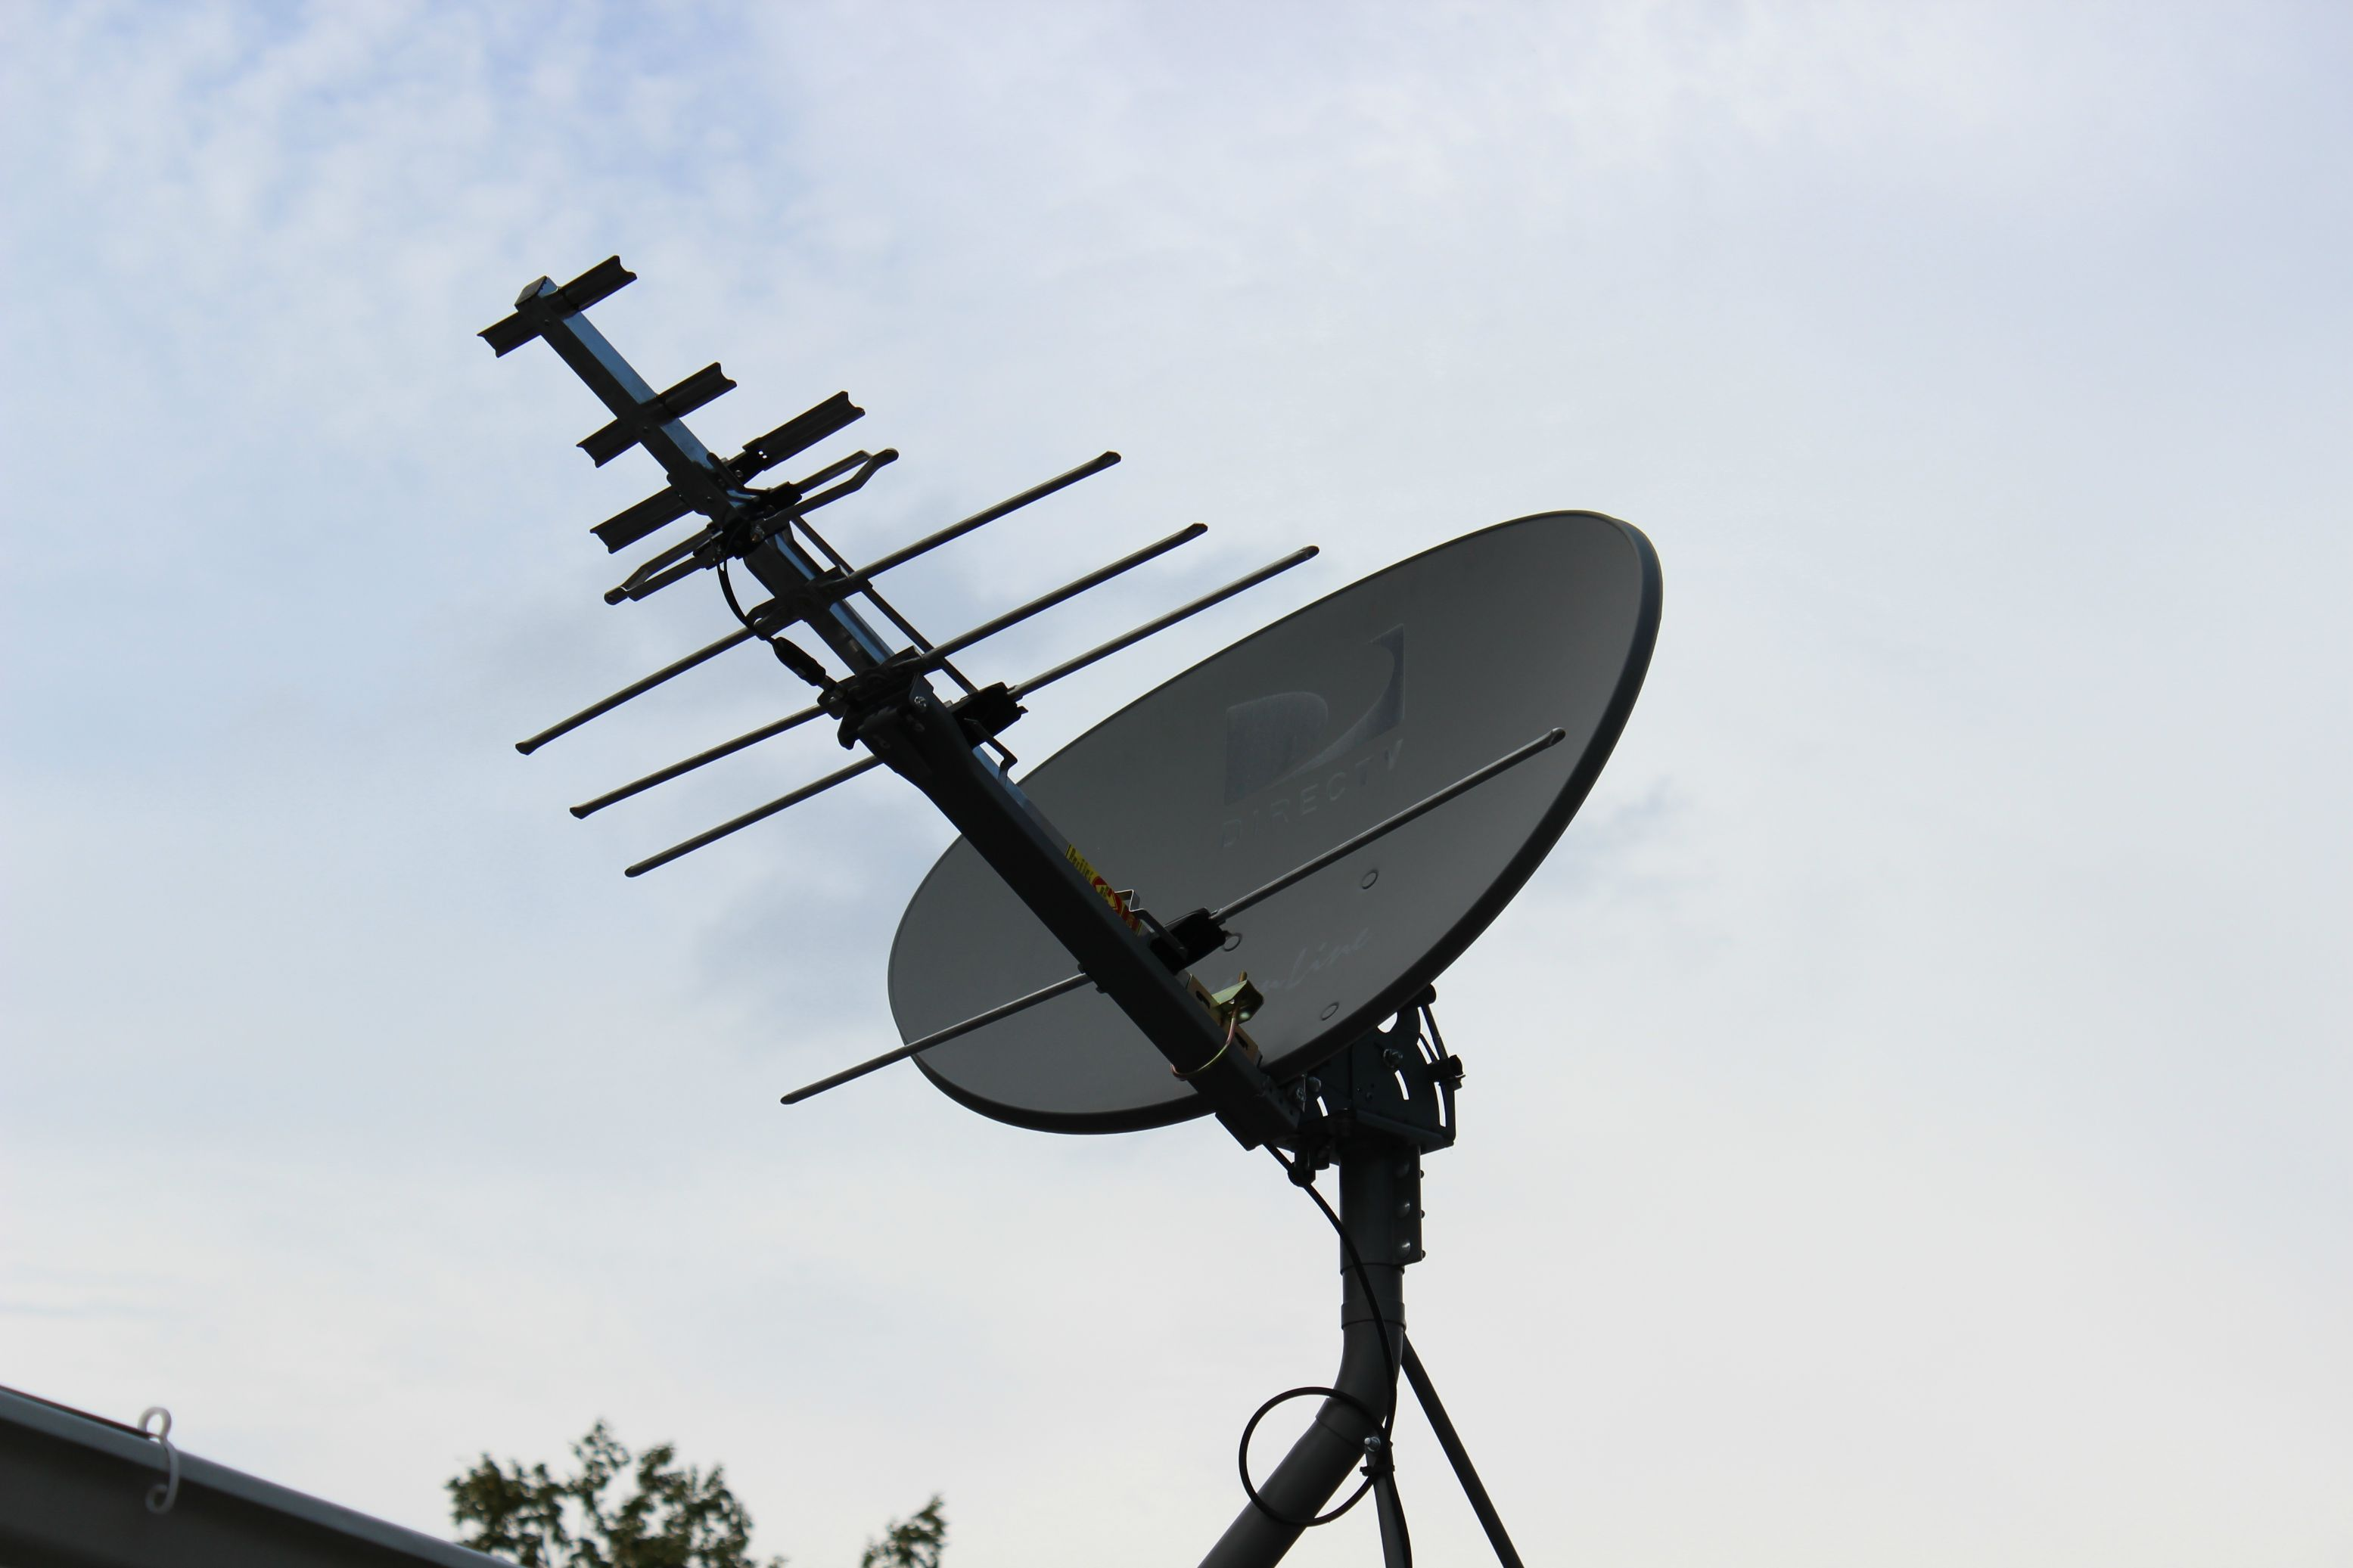 i turned my satellite dish into a badass hdtv antenna [ 3110 x 2073 Pixel ]